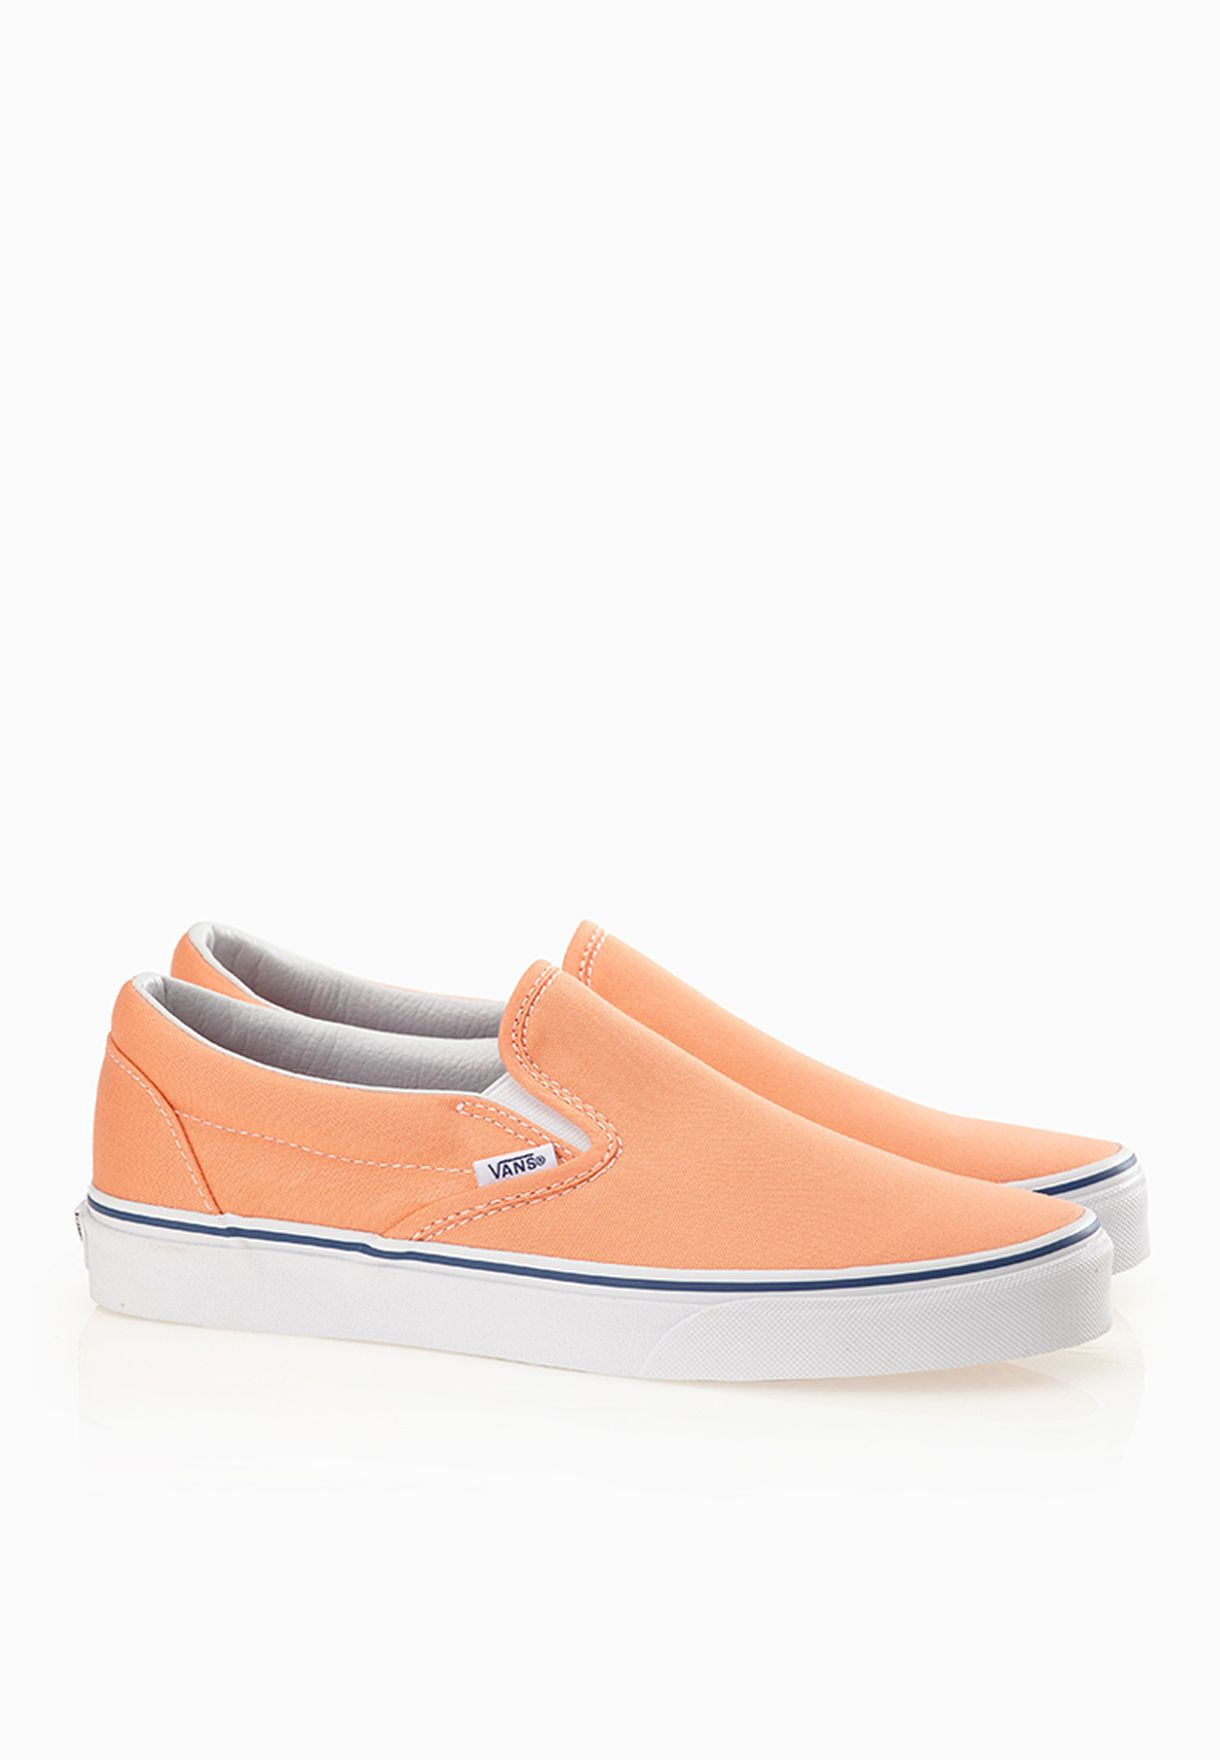 d36bf760221da8 Shop Vans orange Classic Slip-Ons for Women in UAE - VA088SH00IFF